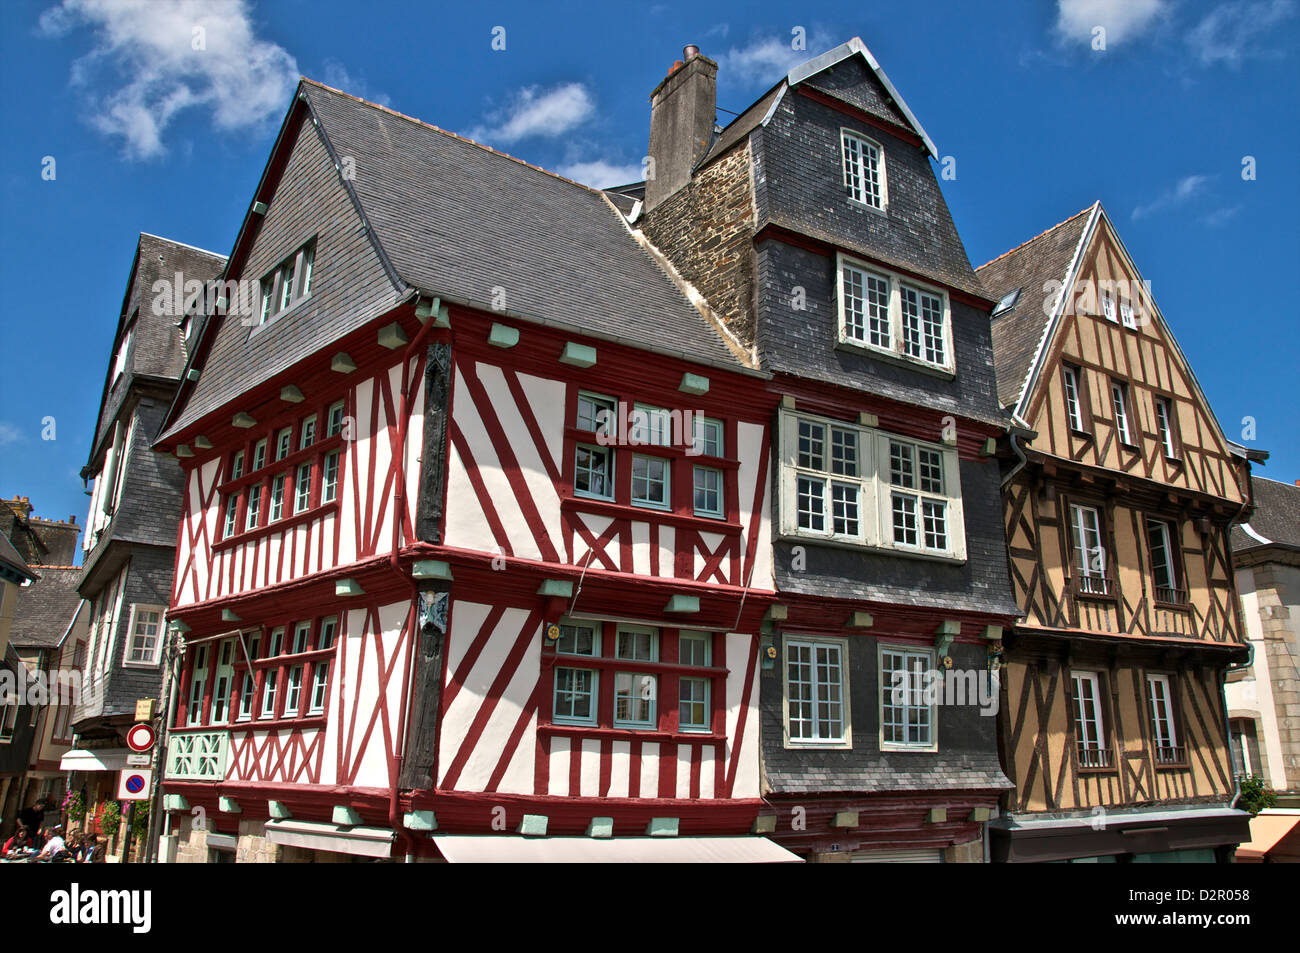 Medieval half timbered houses, old town, Morlaix, Finistere, Brittany, France, Europe - Stock Image